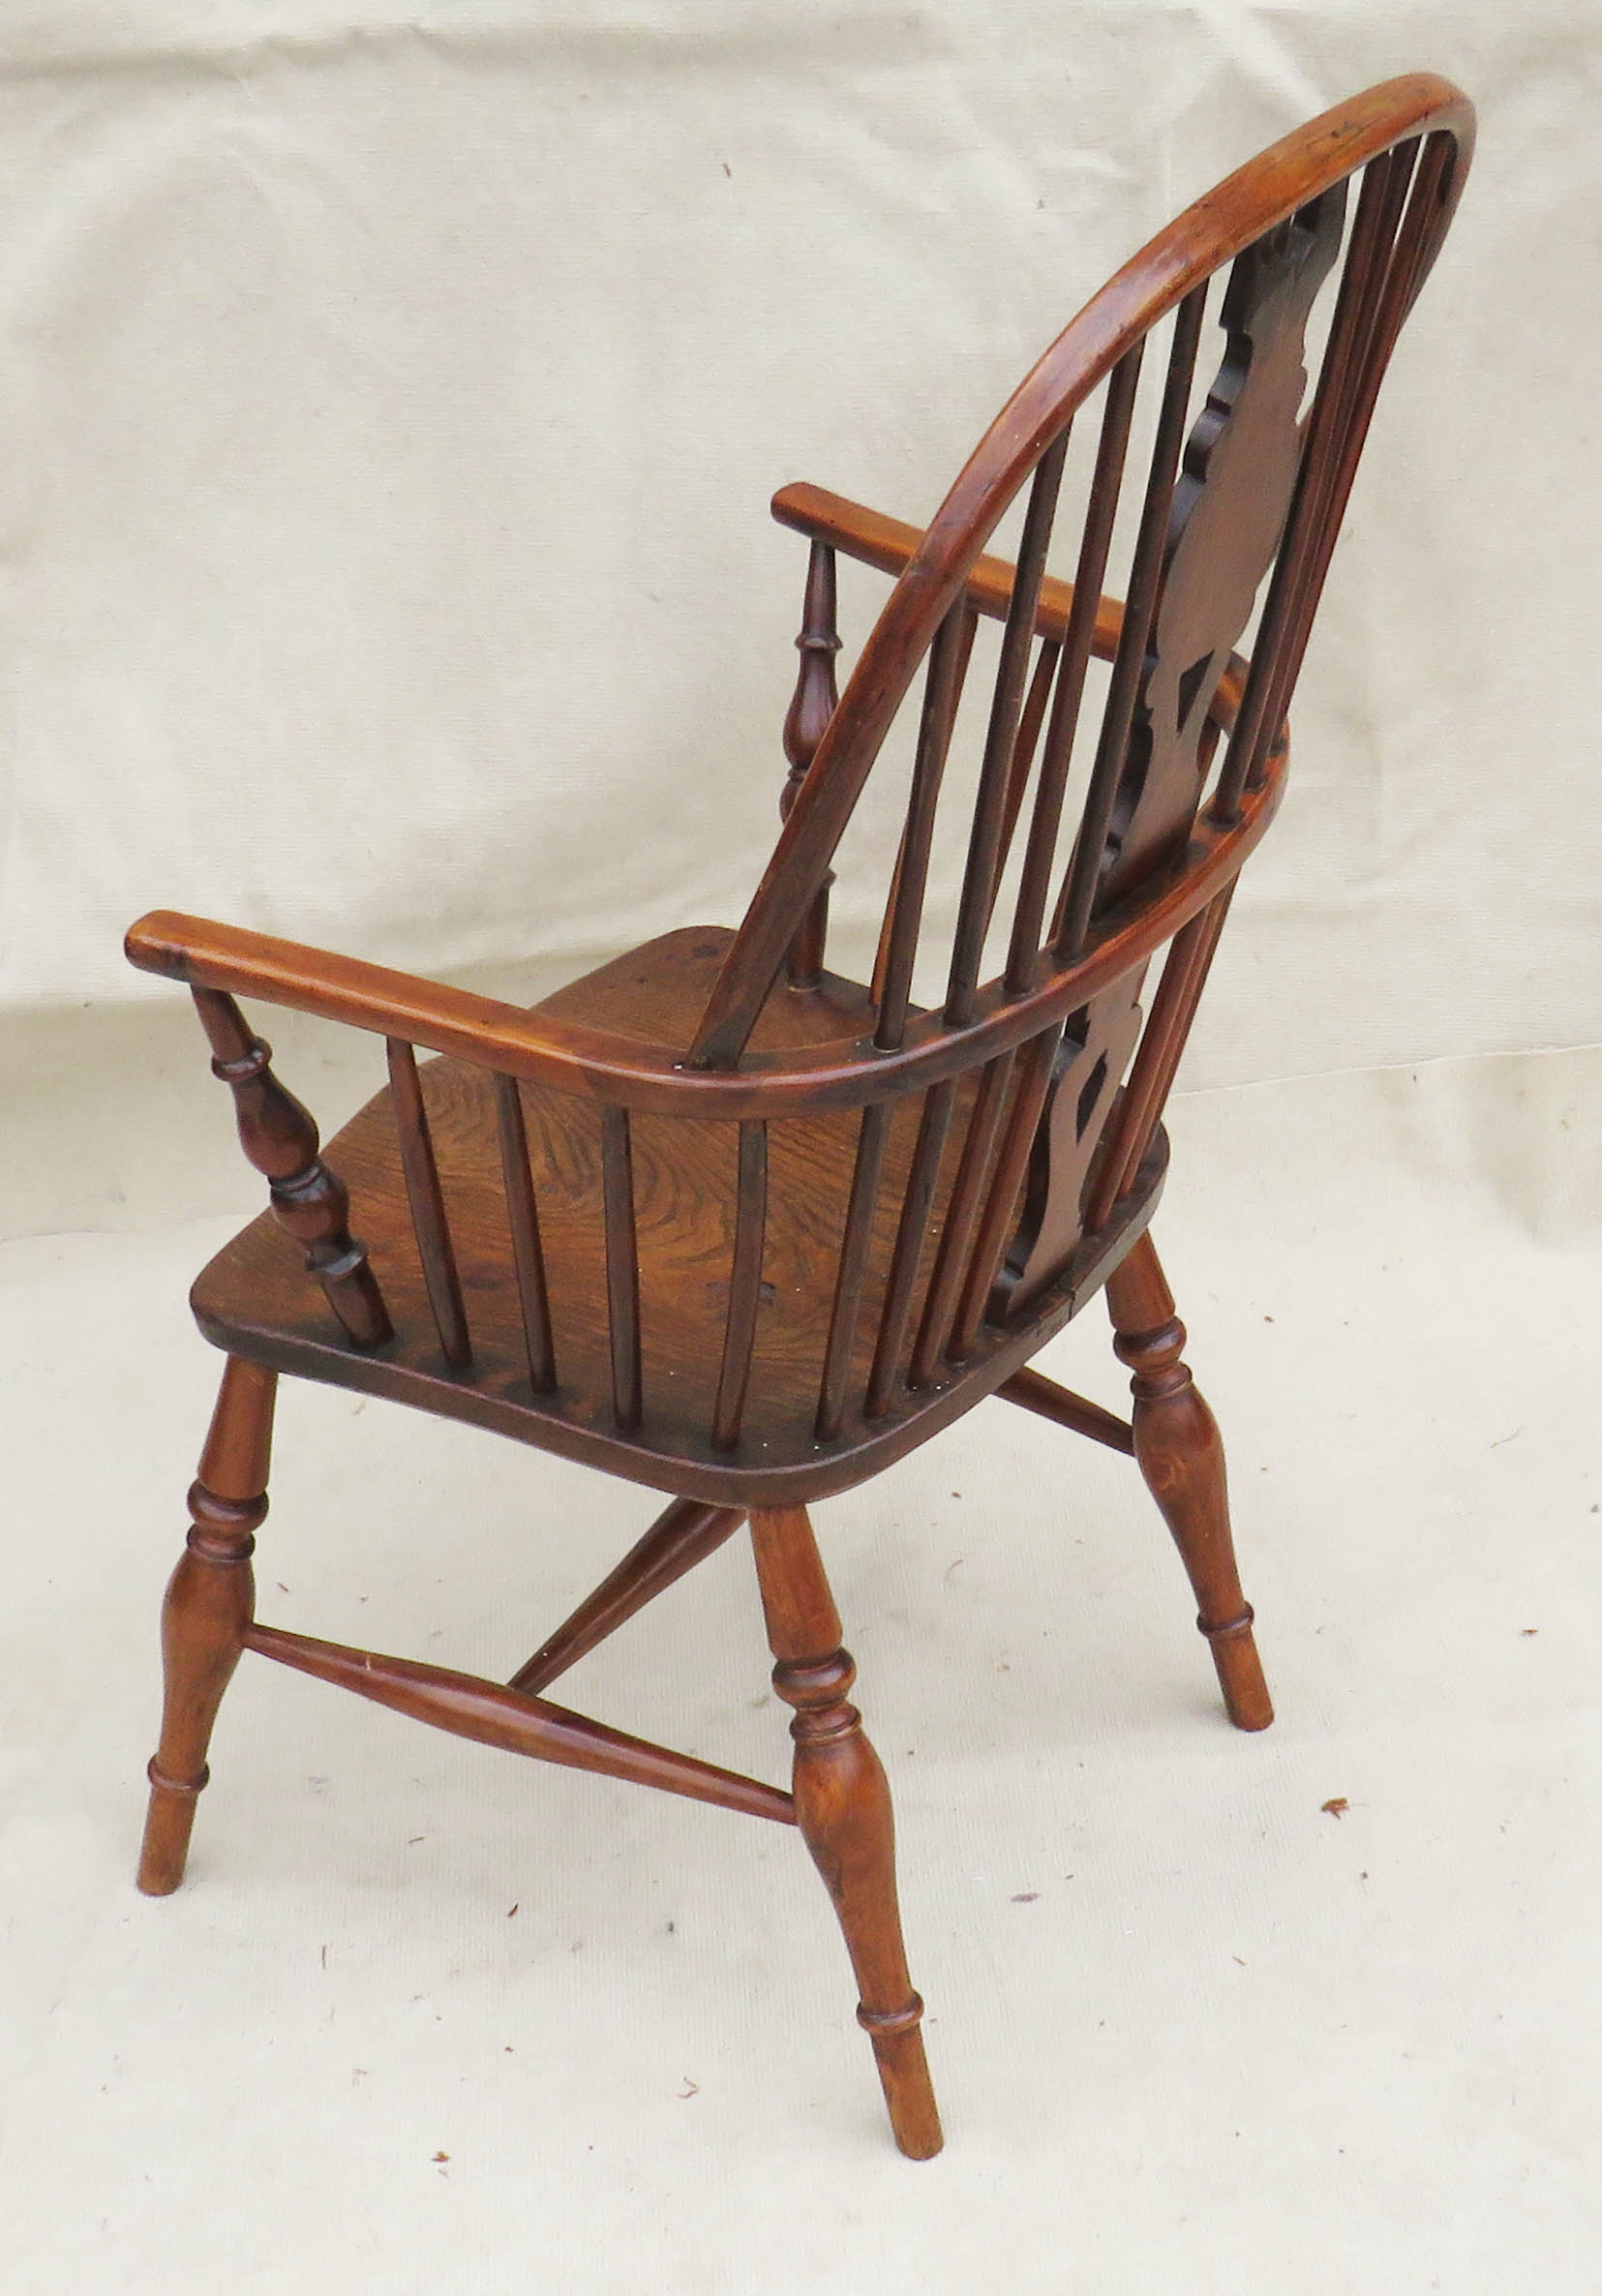 Lot 47 - Thames Valley Draft Back Windsor Armchair, Early 19th